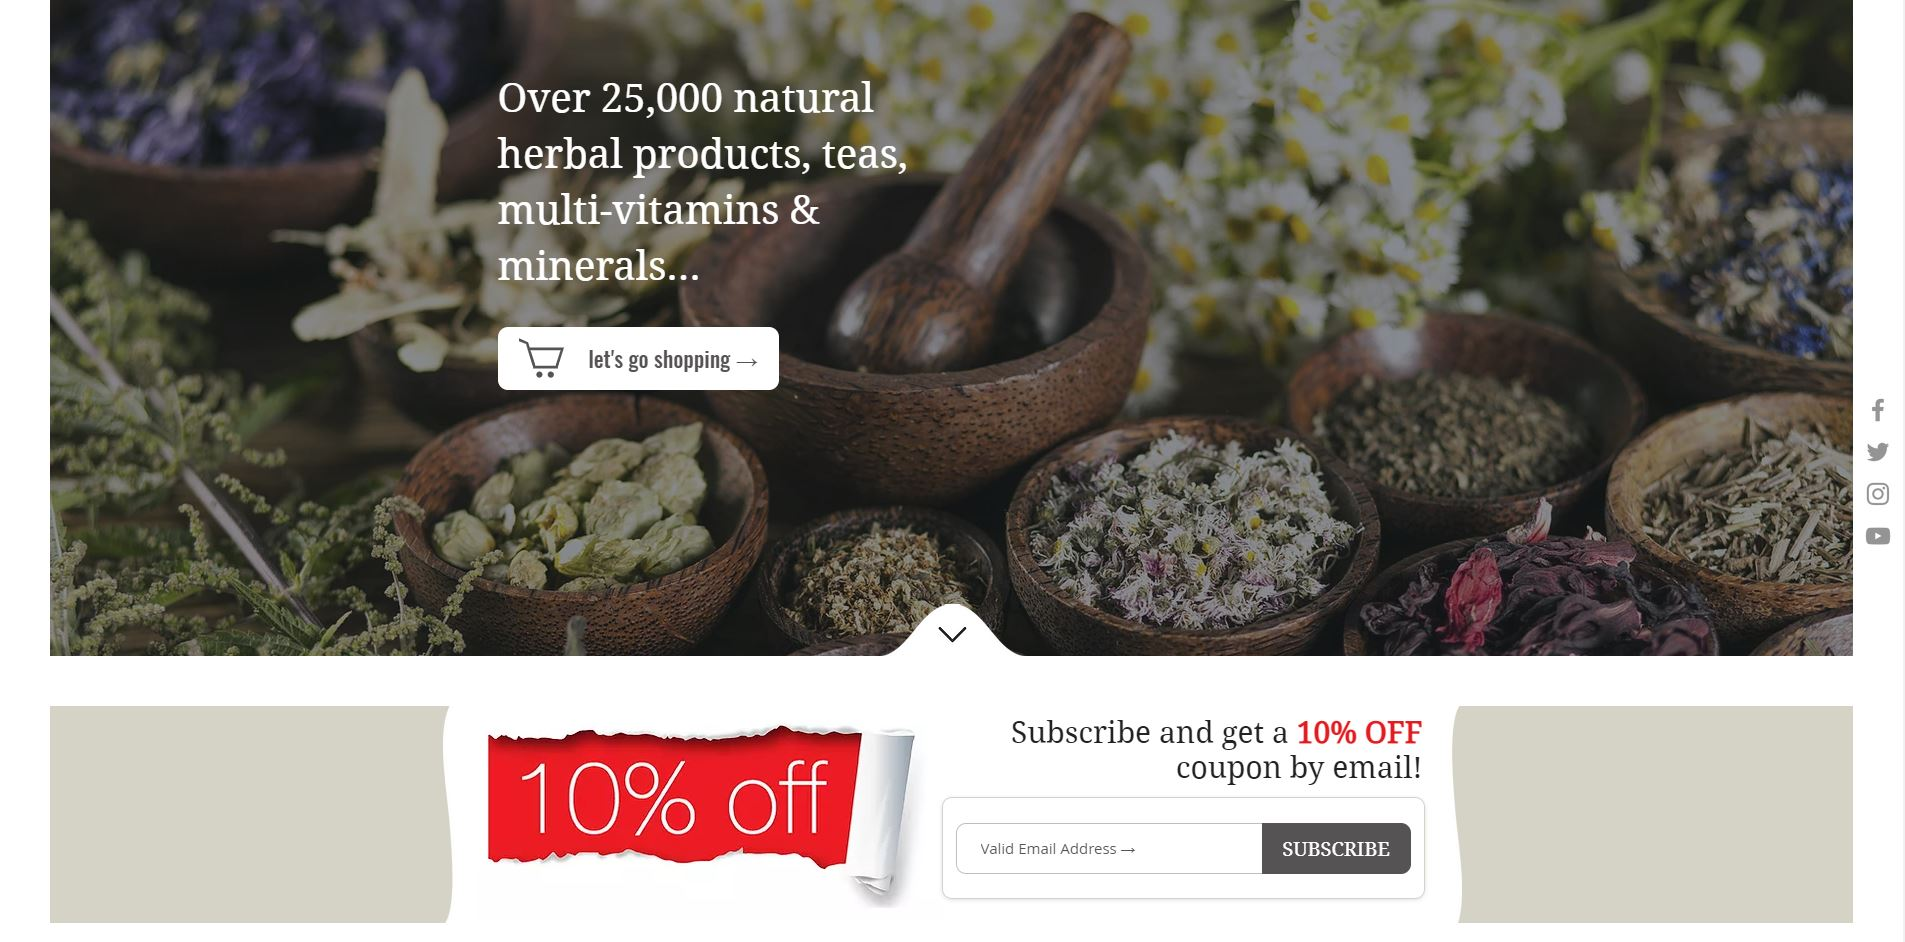 The Herbal Gardens FL Natural Products & More!